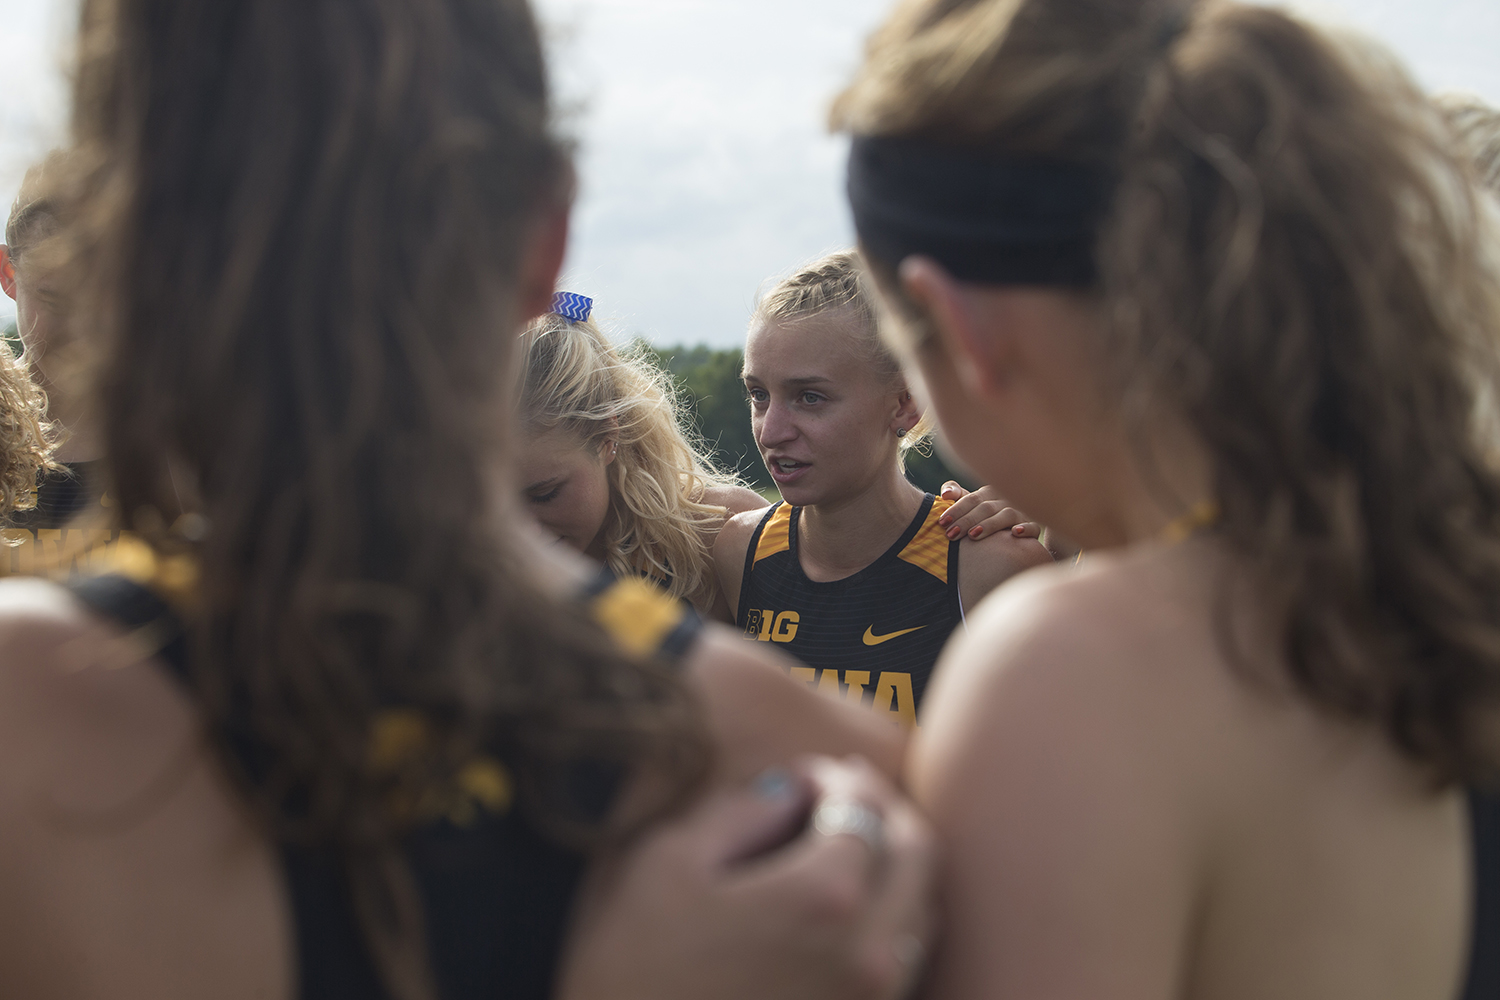 Senior Andrea Shine gives a pep talk before the Hawkeye Invitational at Ashton Cross Country course on Friday, August 31, 2018. The Hawkeyes were defeated by Iowa State 24-56. Andrea Shine placed first in the Women's 4K with a time of 14:07.5. (Katie Goodale/ The Daily Iowan)